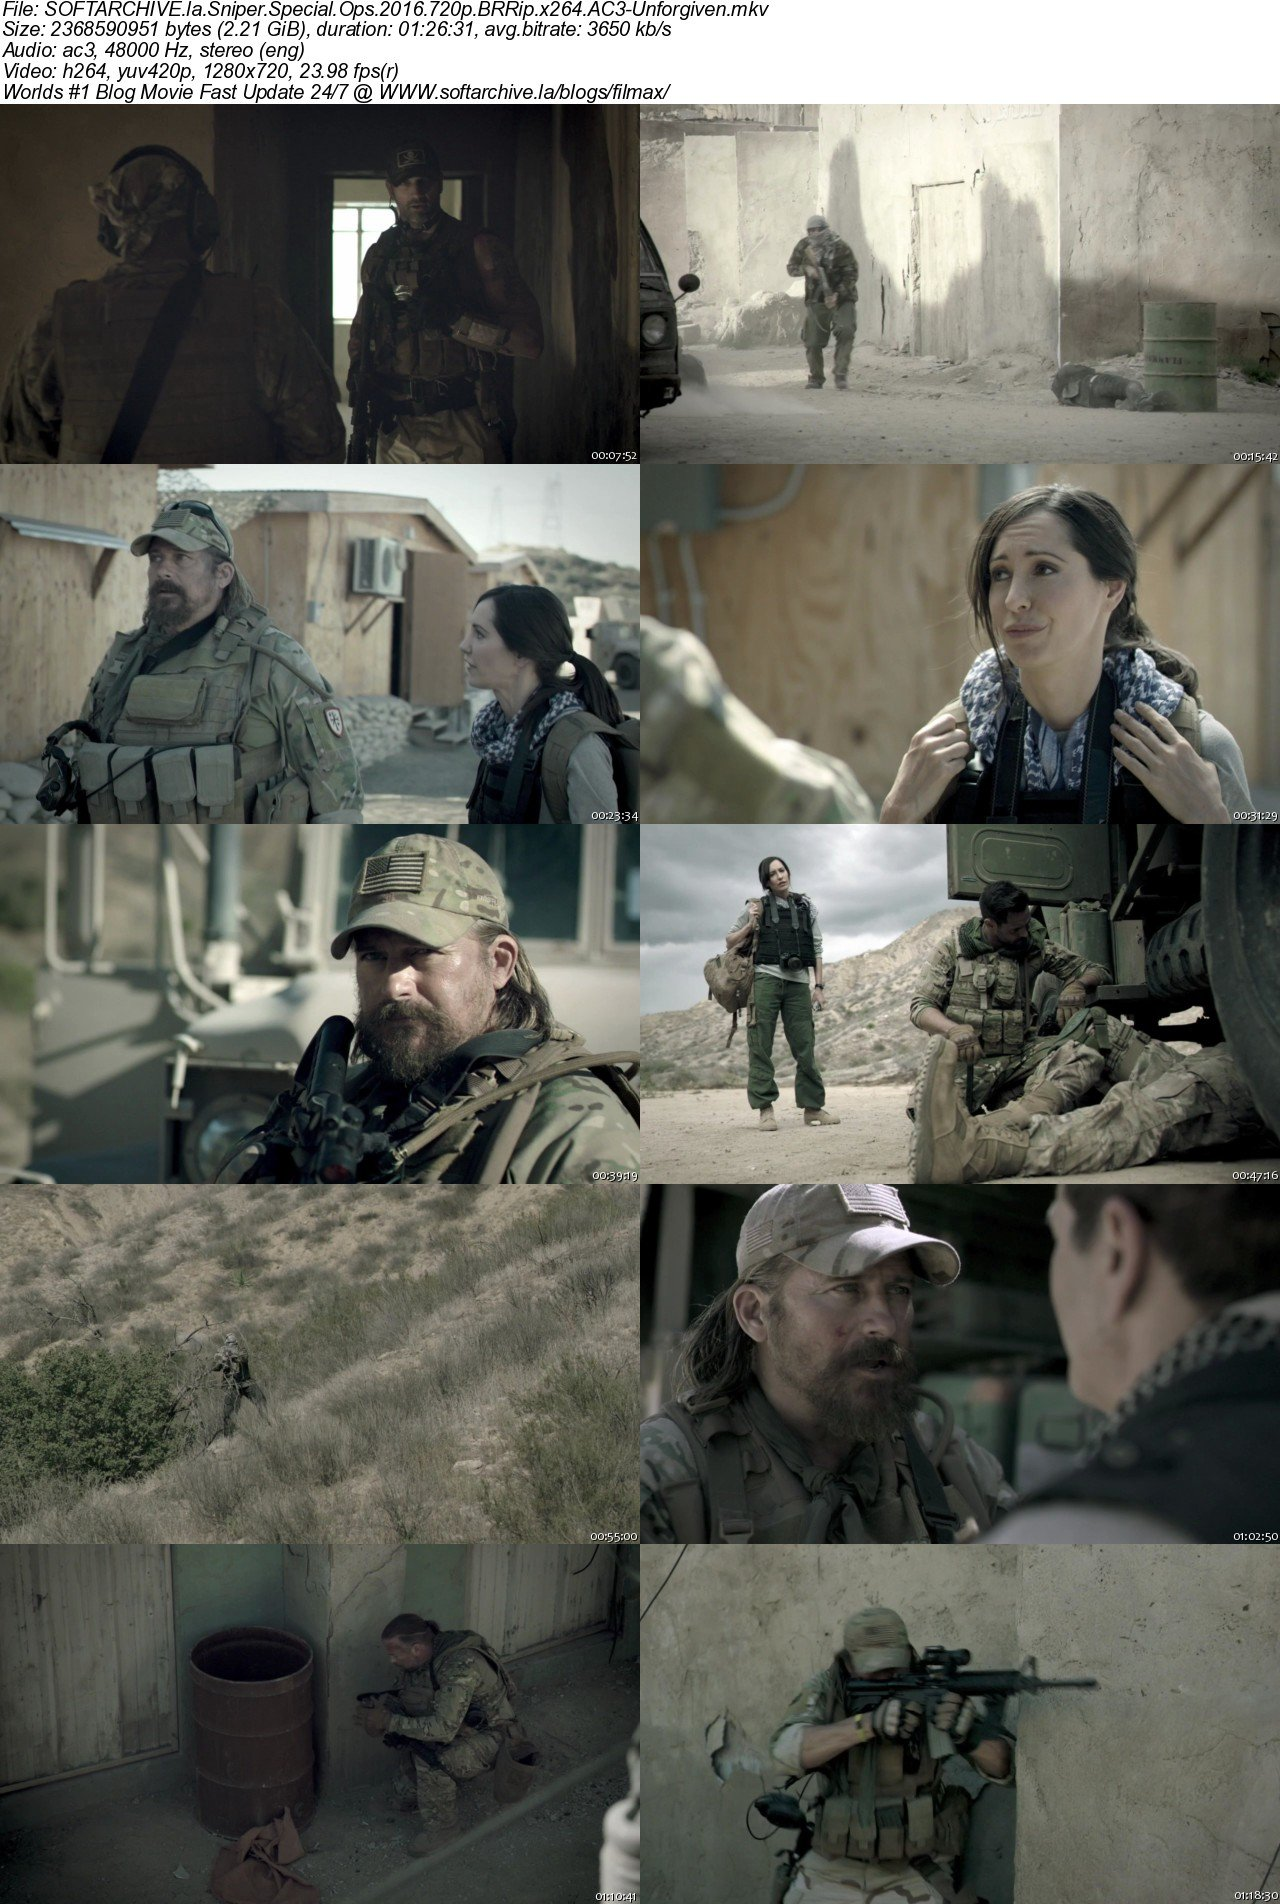 Download Sniper Special Ops 2016 720p BRRip x264 AC3-Unforgiven - SoftArchive